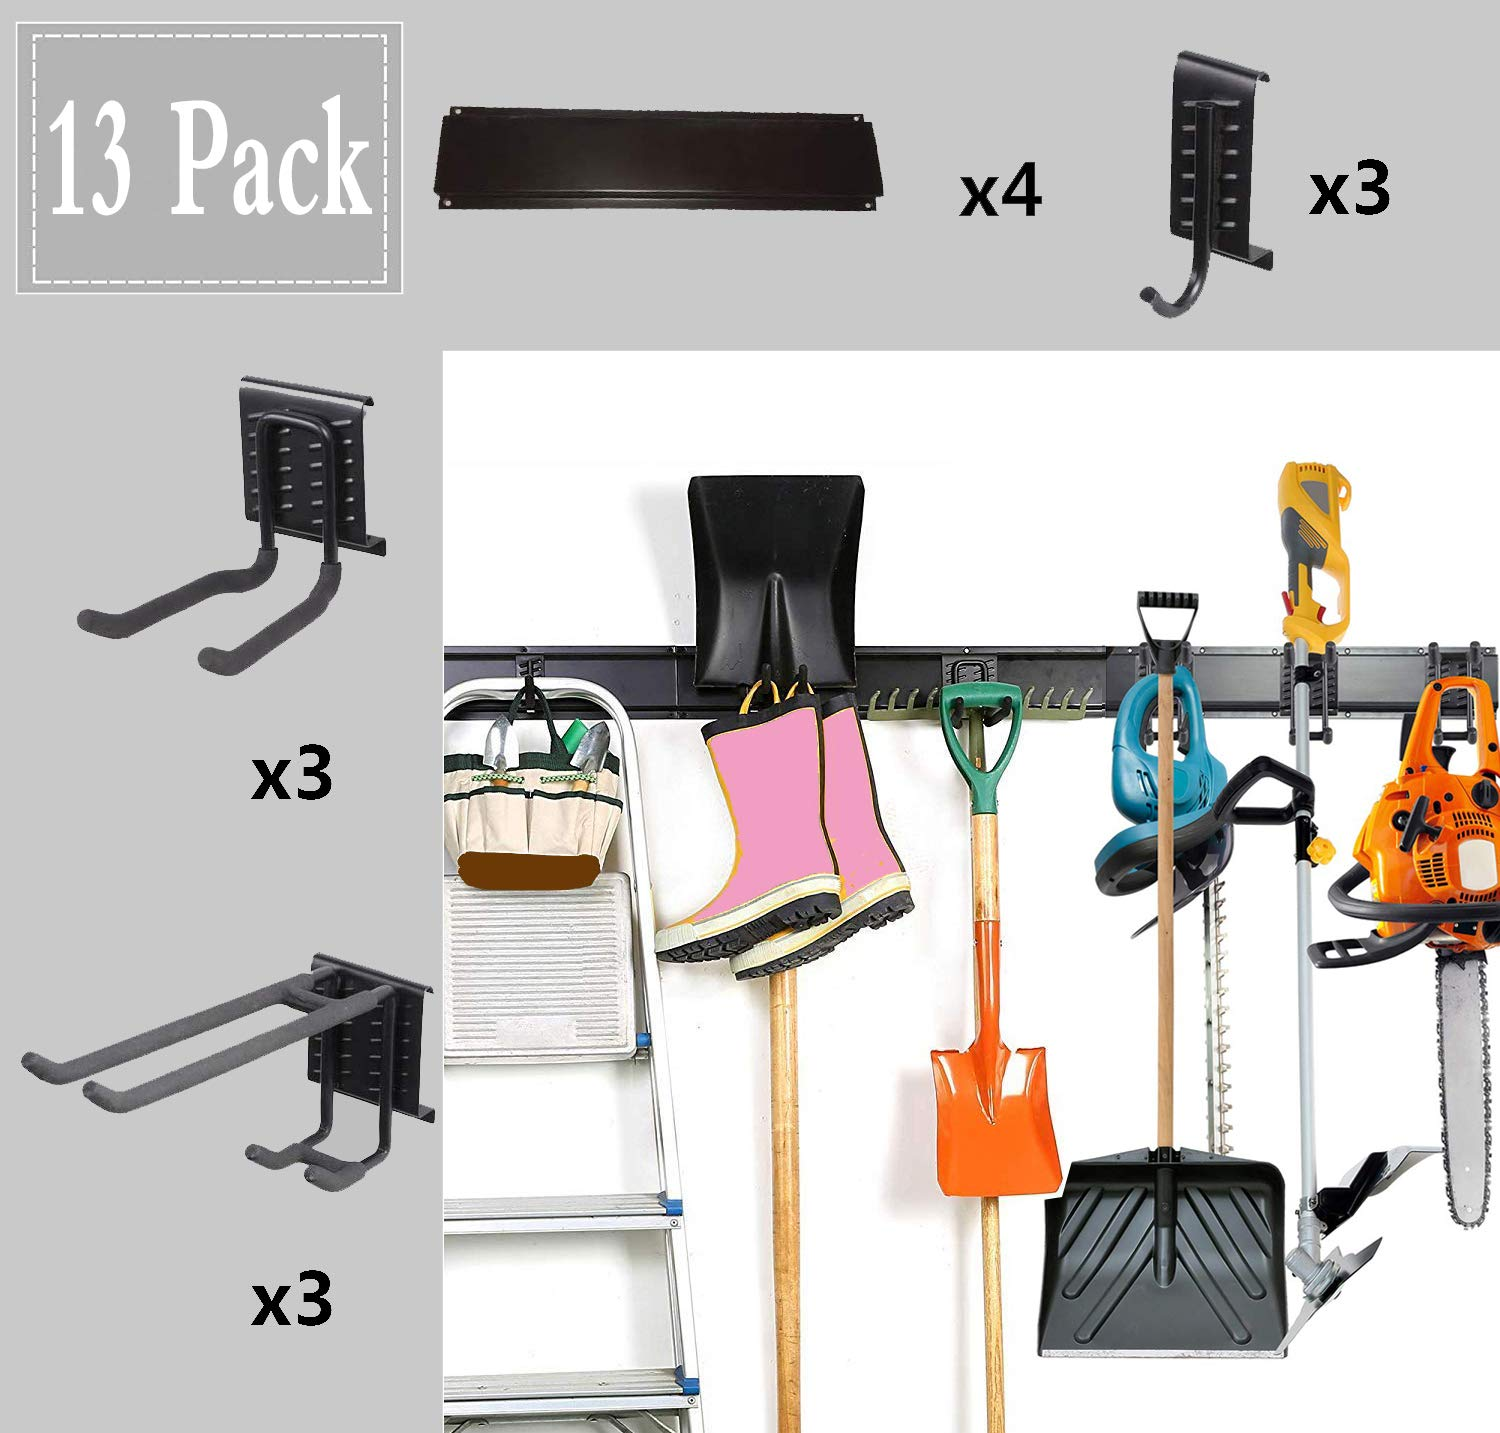 """13PC Garage Organizer,64"""" Garage Hooks And Hangers Steel Tool Storage,Metal Utility Double Hooks,Heavy Duty for Organizing Power Tools,Laddy,Bulk Items,Wall Mount Tool Holder for Home Chair Ladder"""